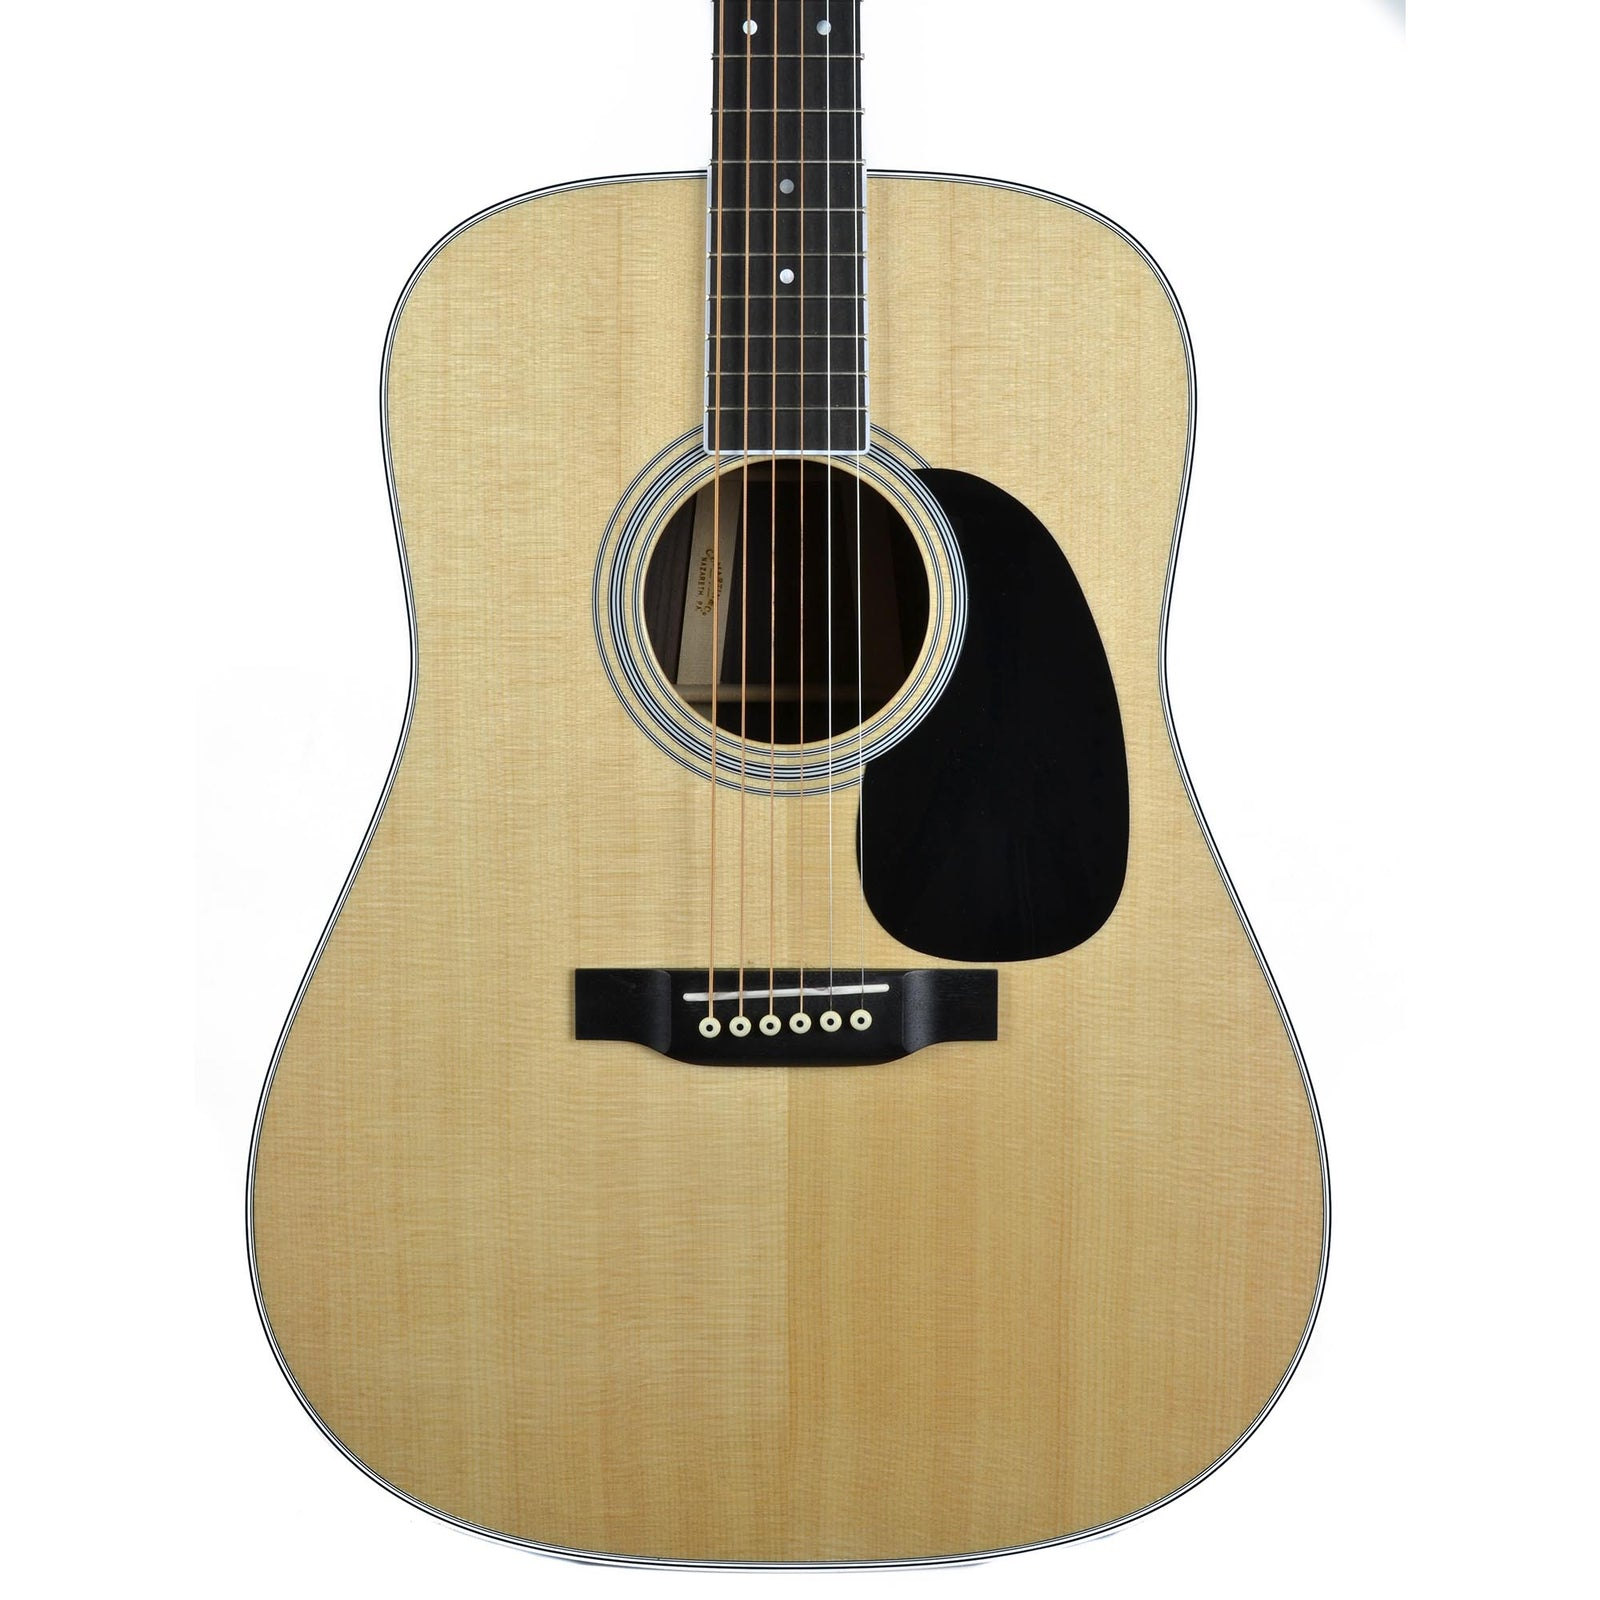 Martin D-35 Dreadnought - Used - Image: 1